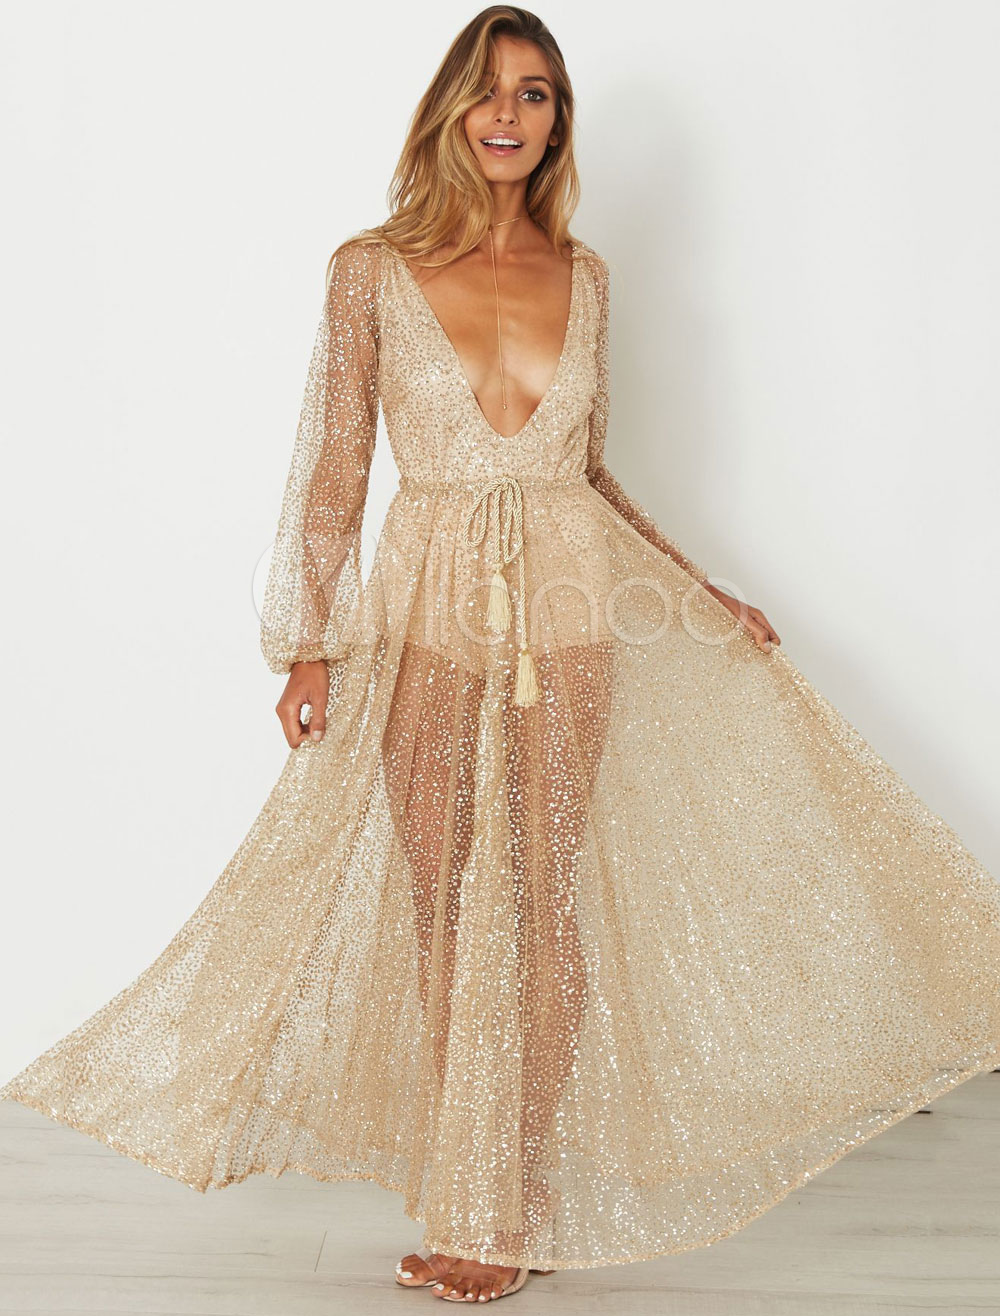 Sequin Maxi Dress Gold Long Sleeve Semi Sheer Women s Plunging Sexy Summer  Long Dress- ... 56c7a8c86